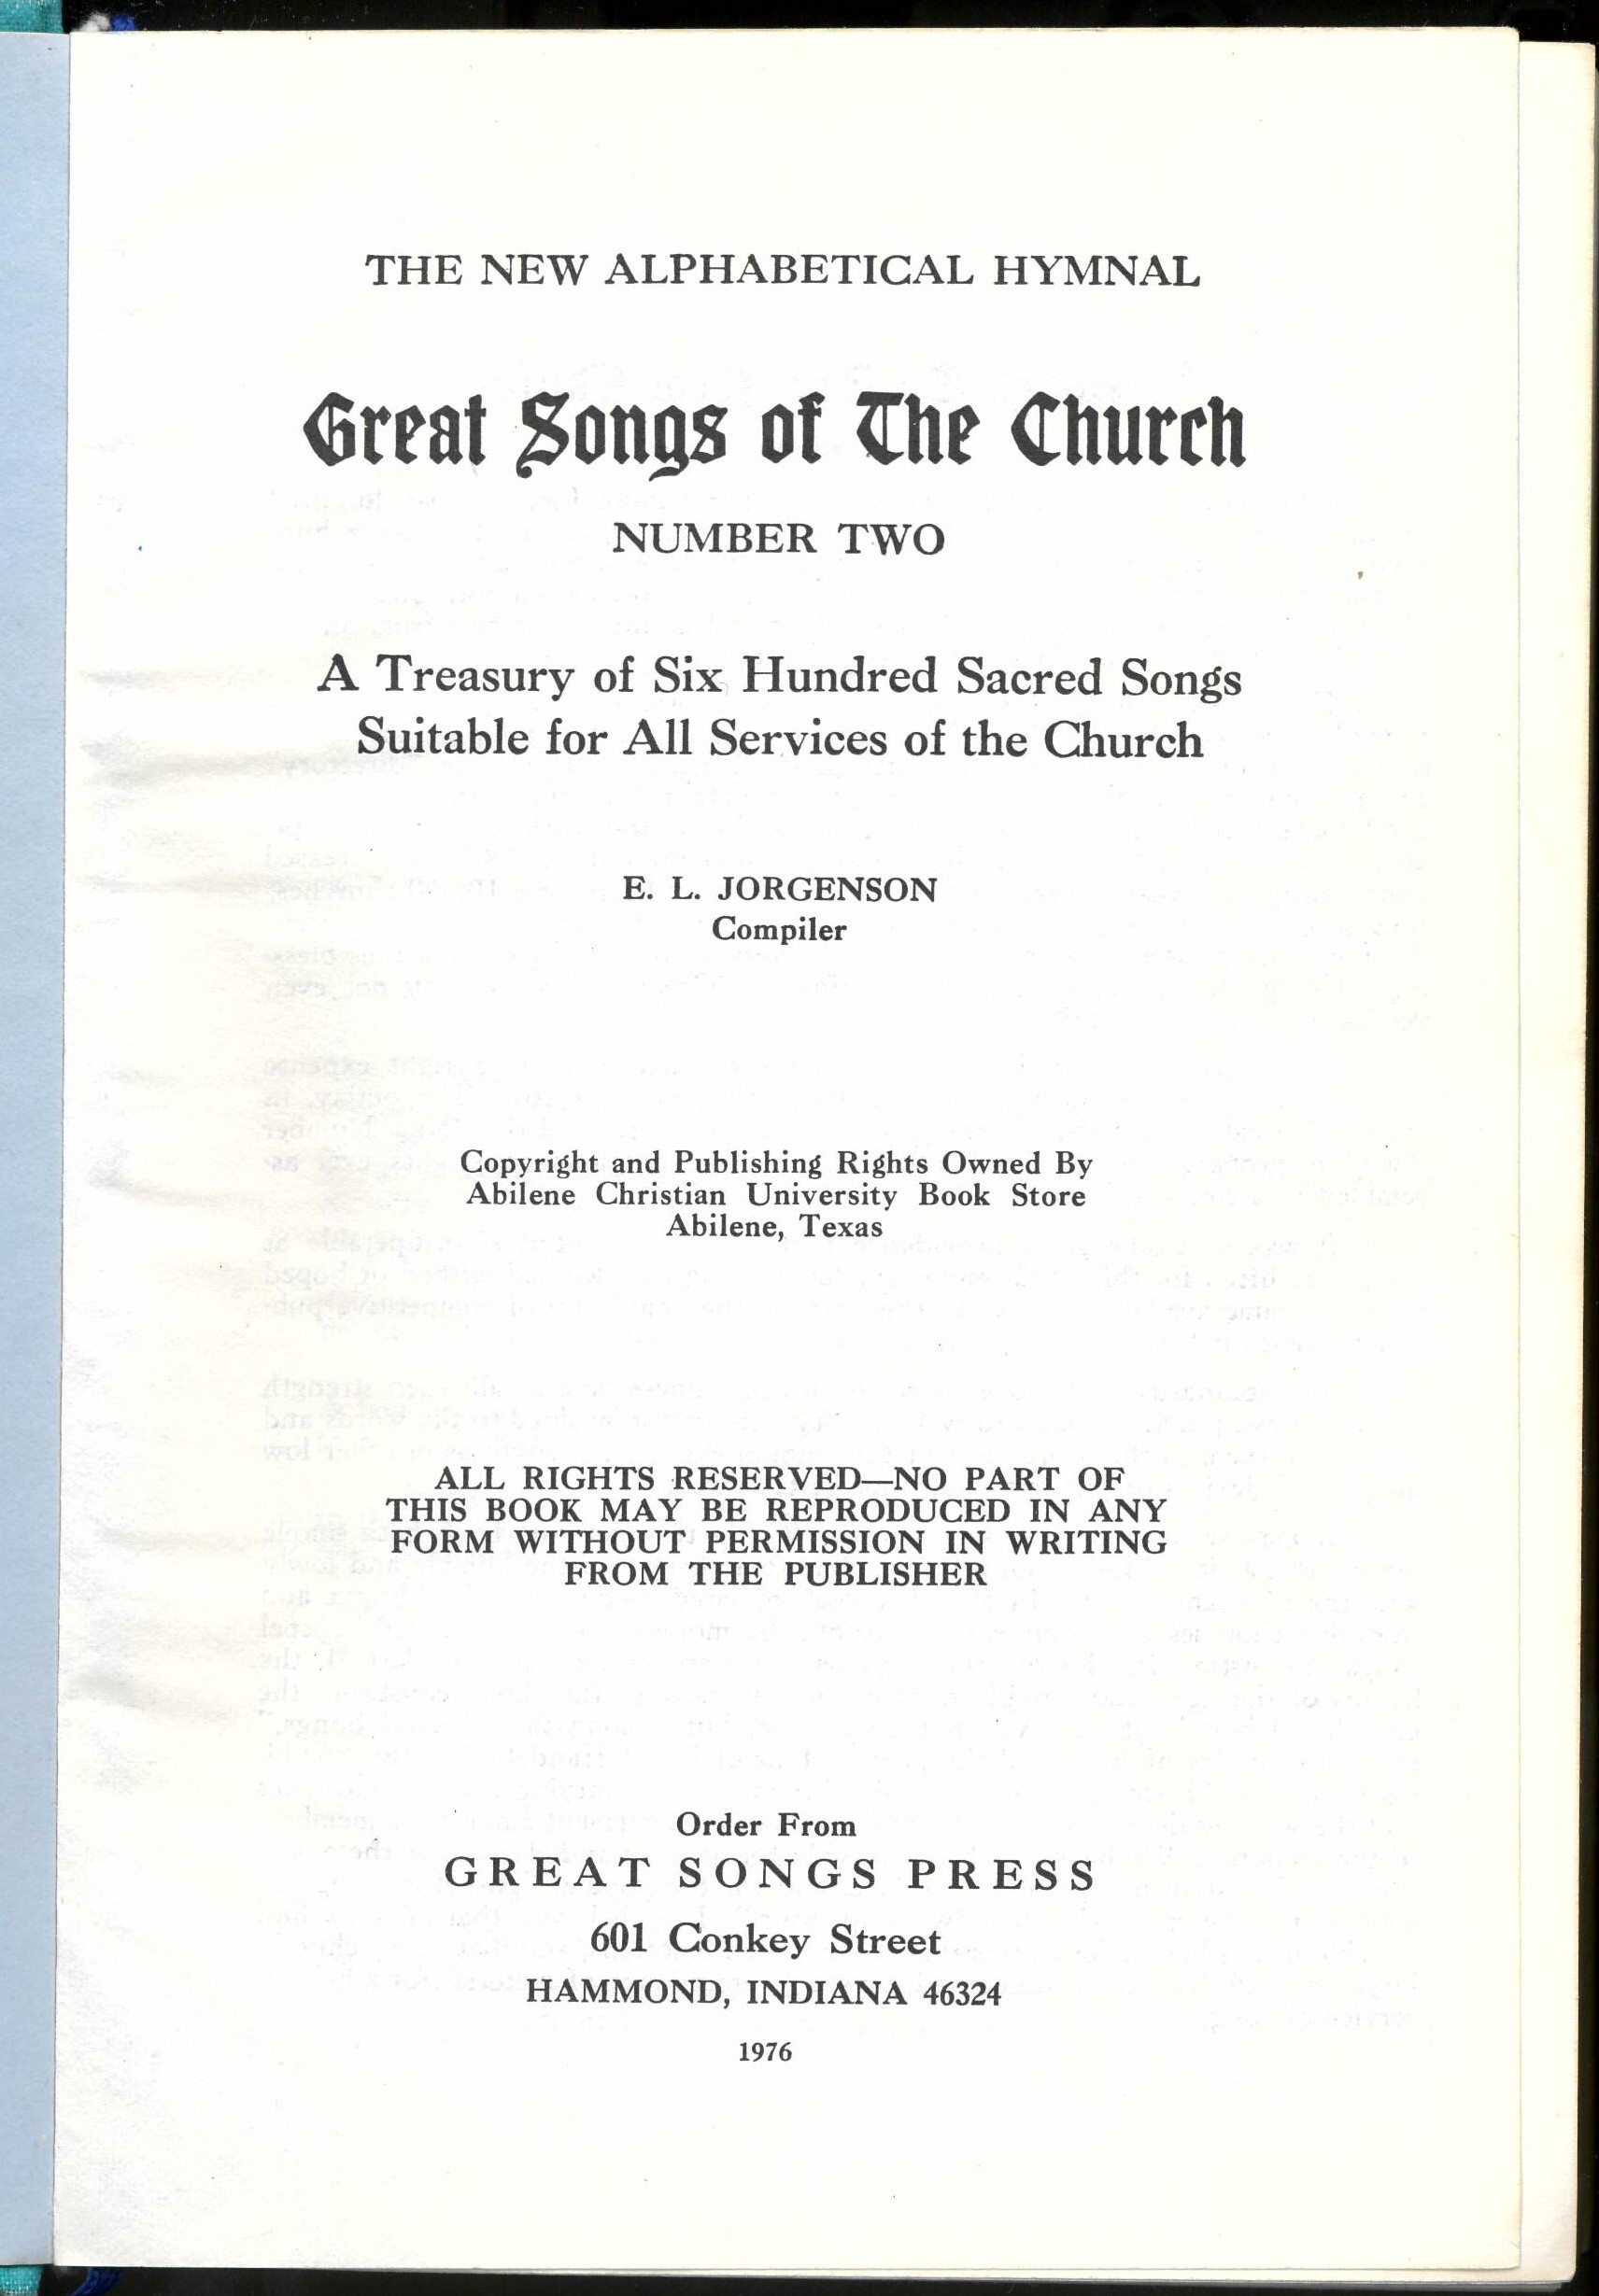 The New Alphabetical Hymnal. Great Songs of the Church Number Two. A Treasury of Six Hundred Sacred Songs Suitable for All Services of the Church. E. L. Jorgenson, Compiler. Great Songs Press: Hammond, Louisiana, 1976. Title page.